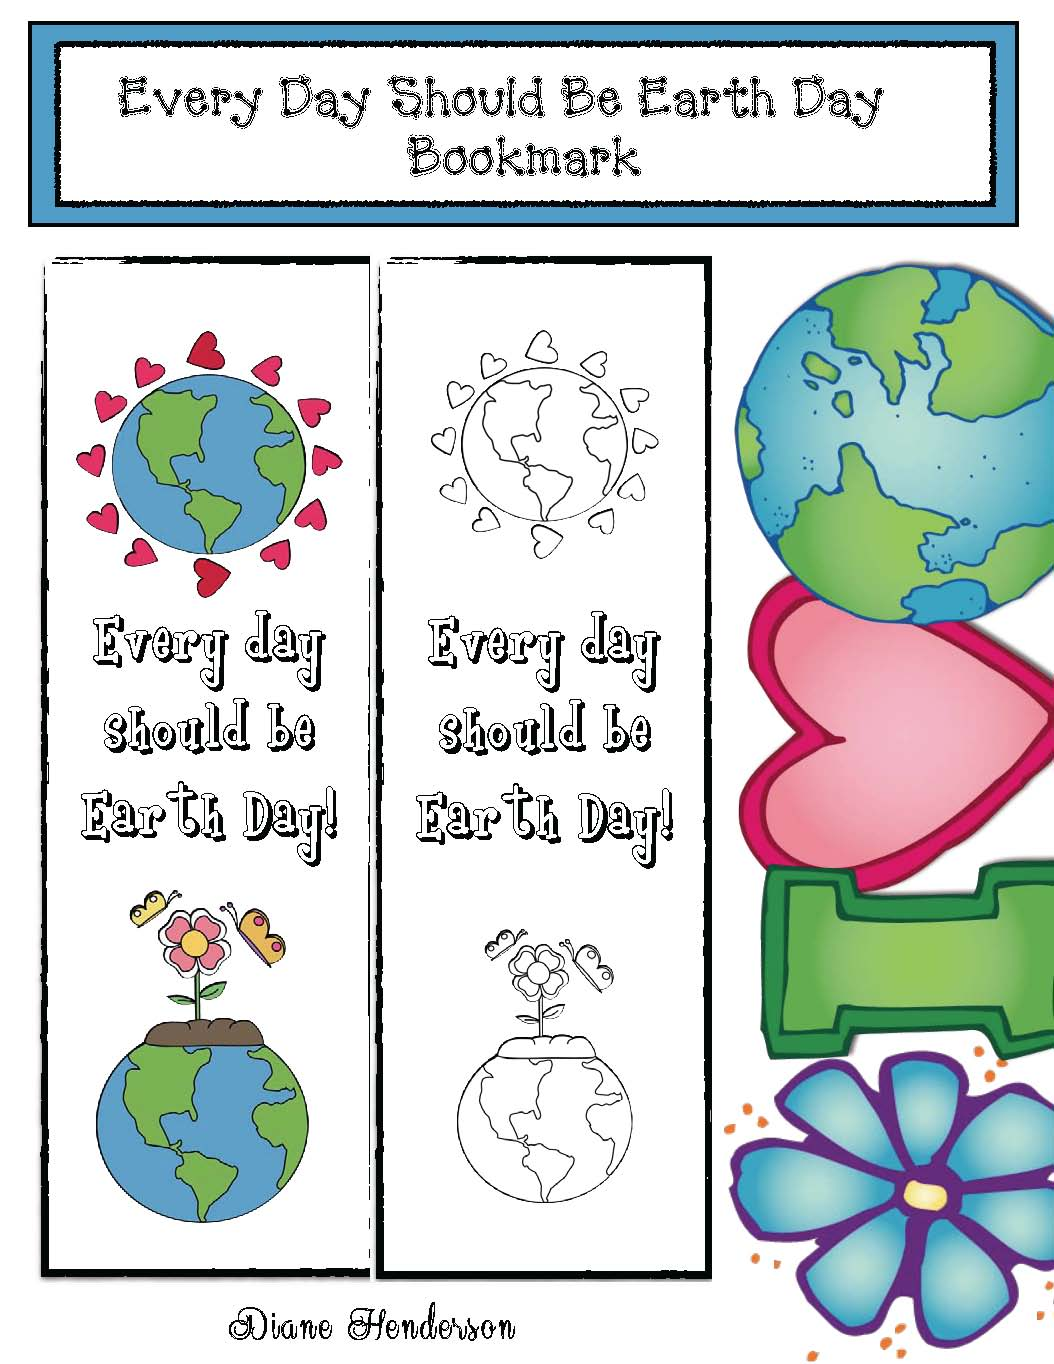 Earth Day Bookmark